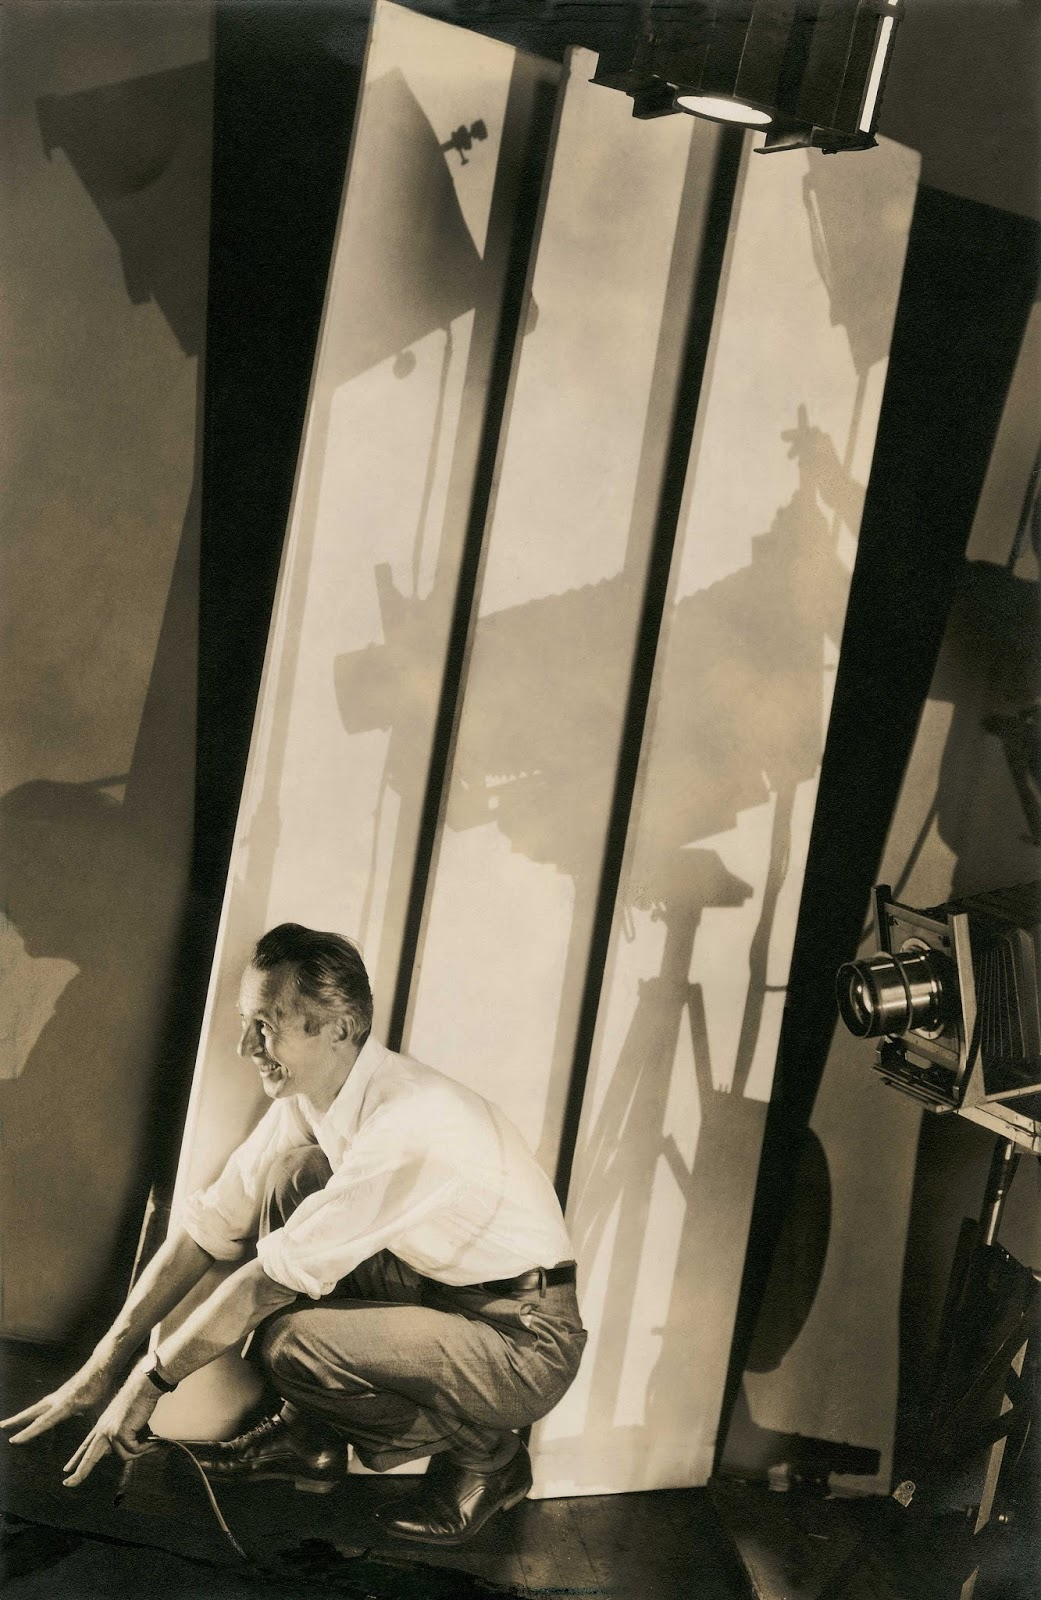 Self-portrait with photographic paraphernalia, . Edward Steichen. Fotografía | Photography